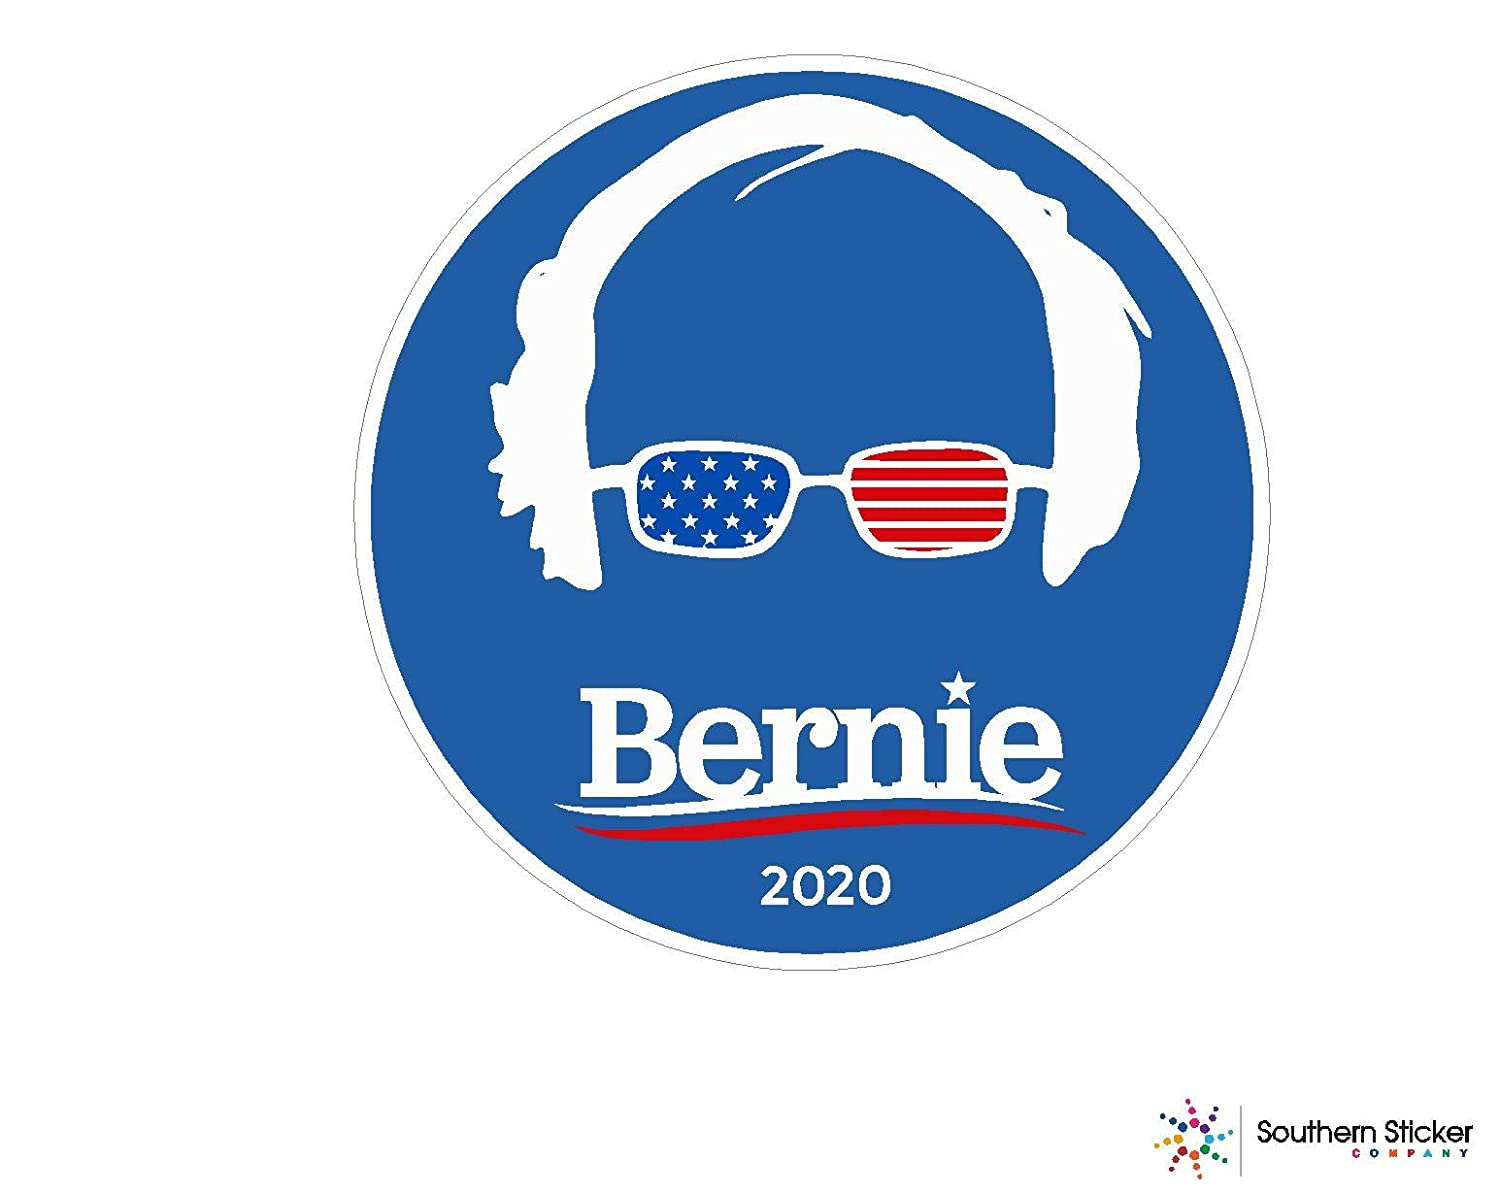 Oval bernie sanders 2020 half face sunglasses 2x2 inches each order comes with 3 stickers president election trump politics voting love baby laptop car